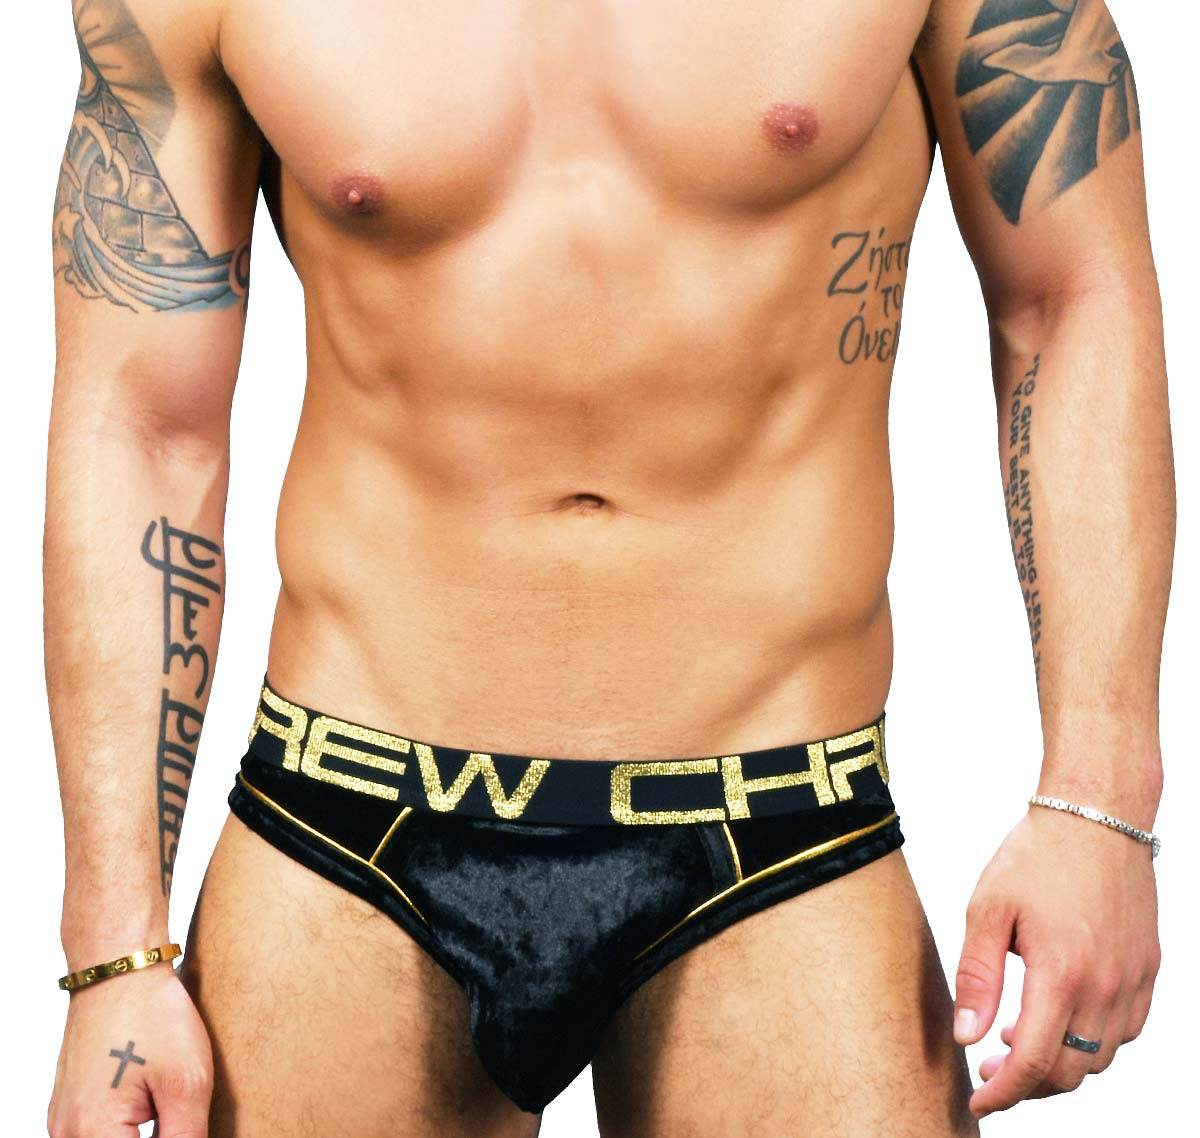 Andrew christian almost naked brief jock for men with larger pouch